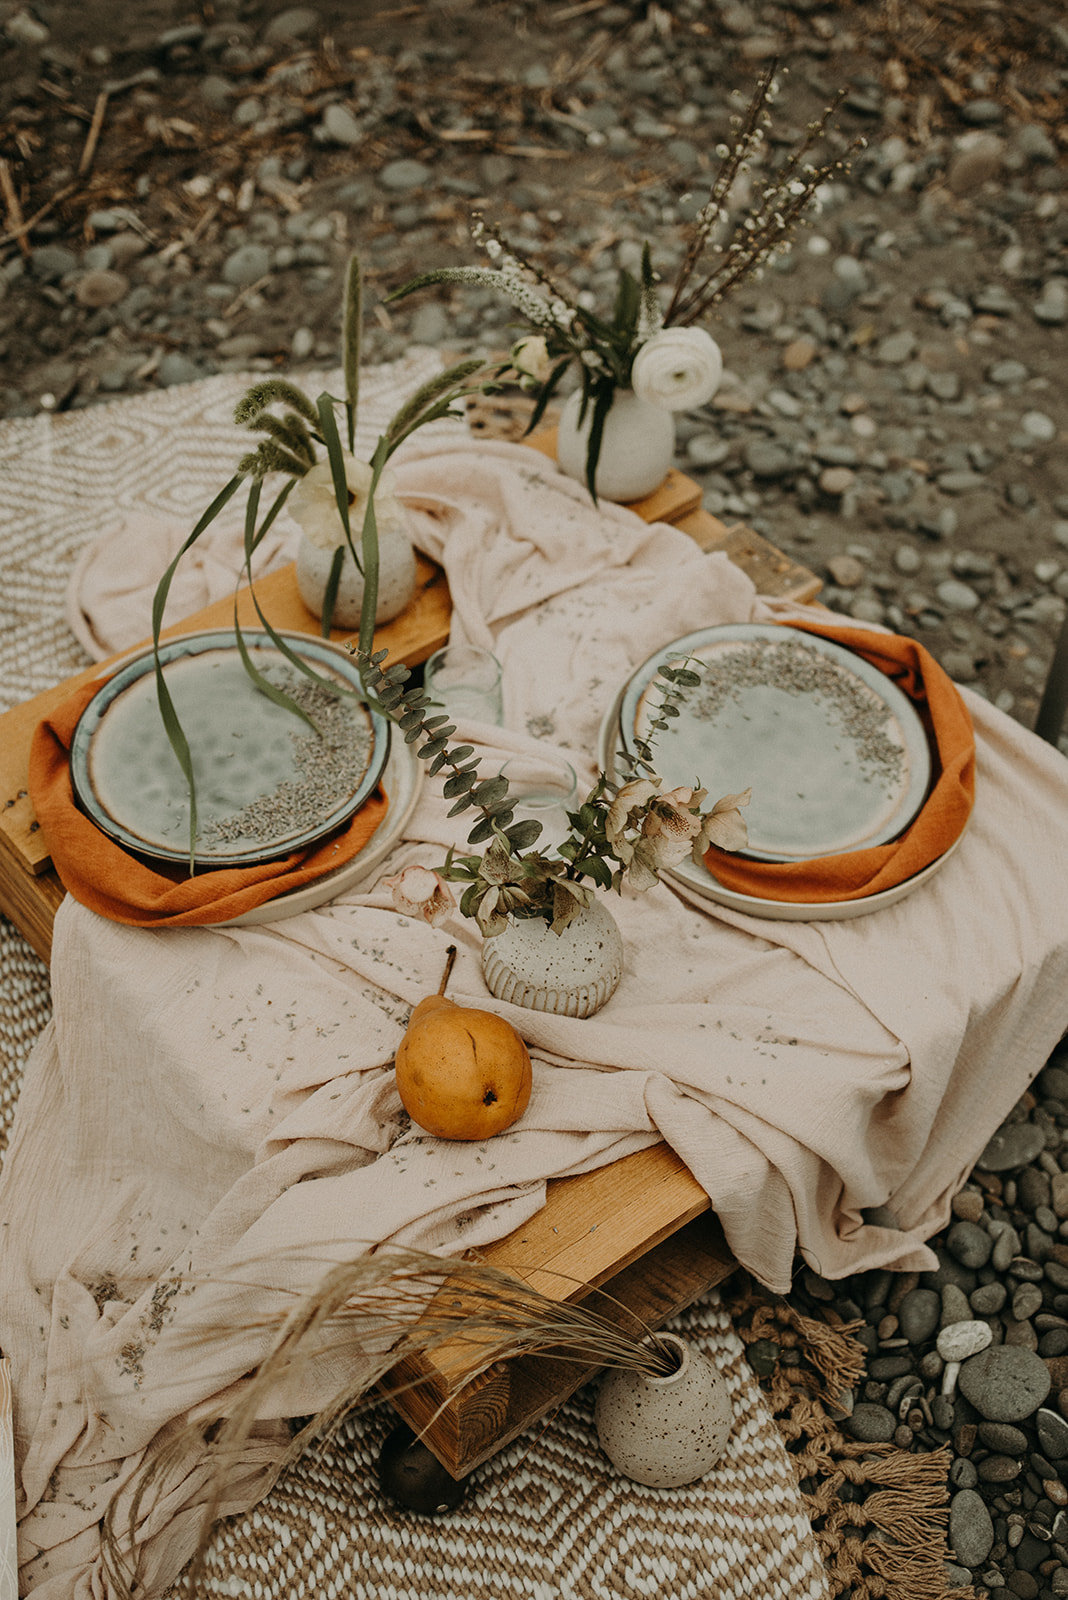 Ruby_Beach_Styled_Elopement_-_Run_Away_with_Me_Elopement_Collective_-_Kamra_Fuller_Photography_-_Details-38